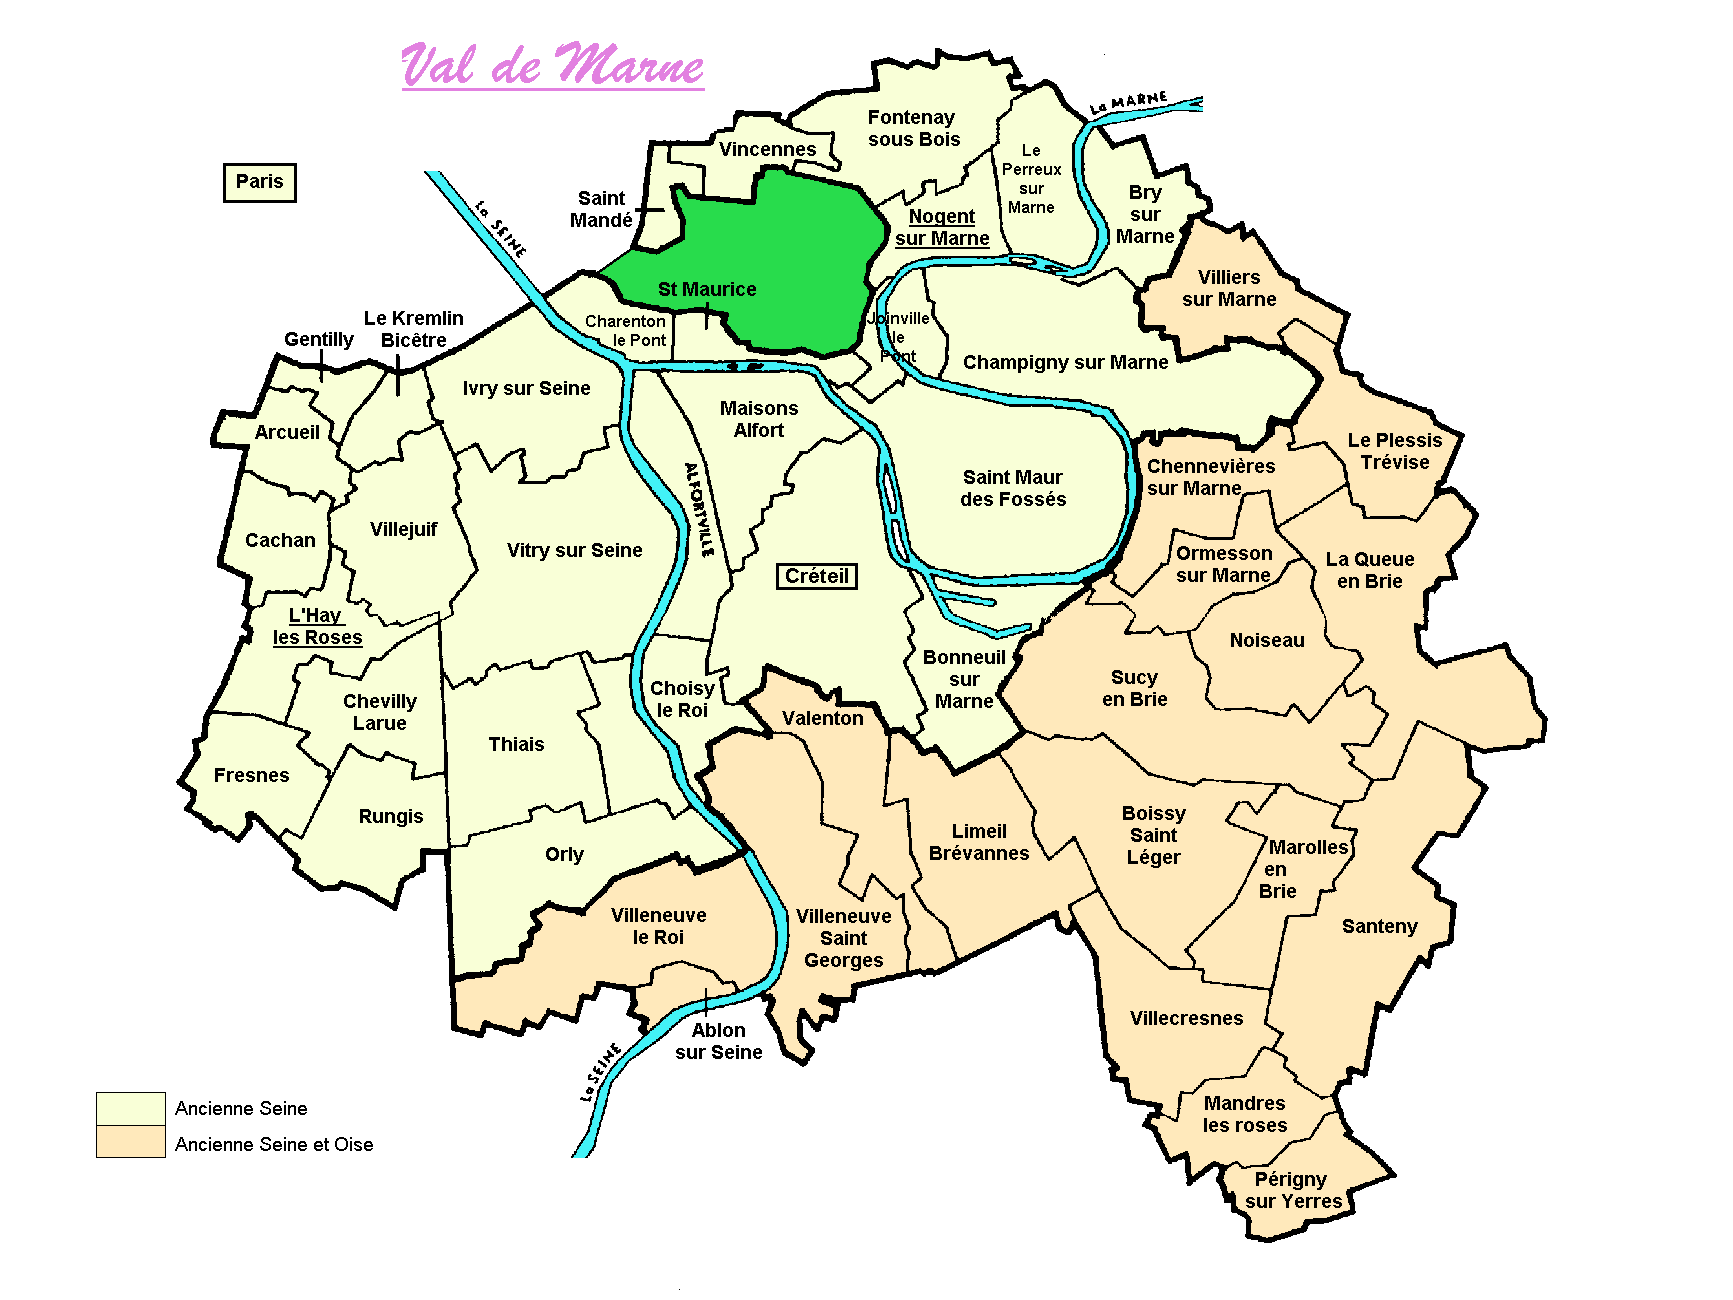 Carte des communes du val de marne valdemarnegenweb for Departement 78 ville